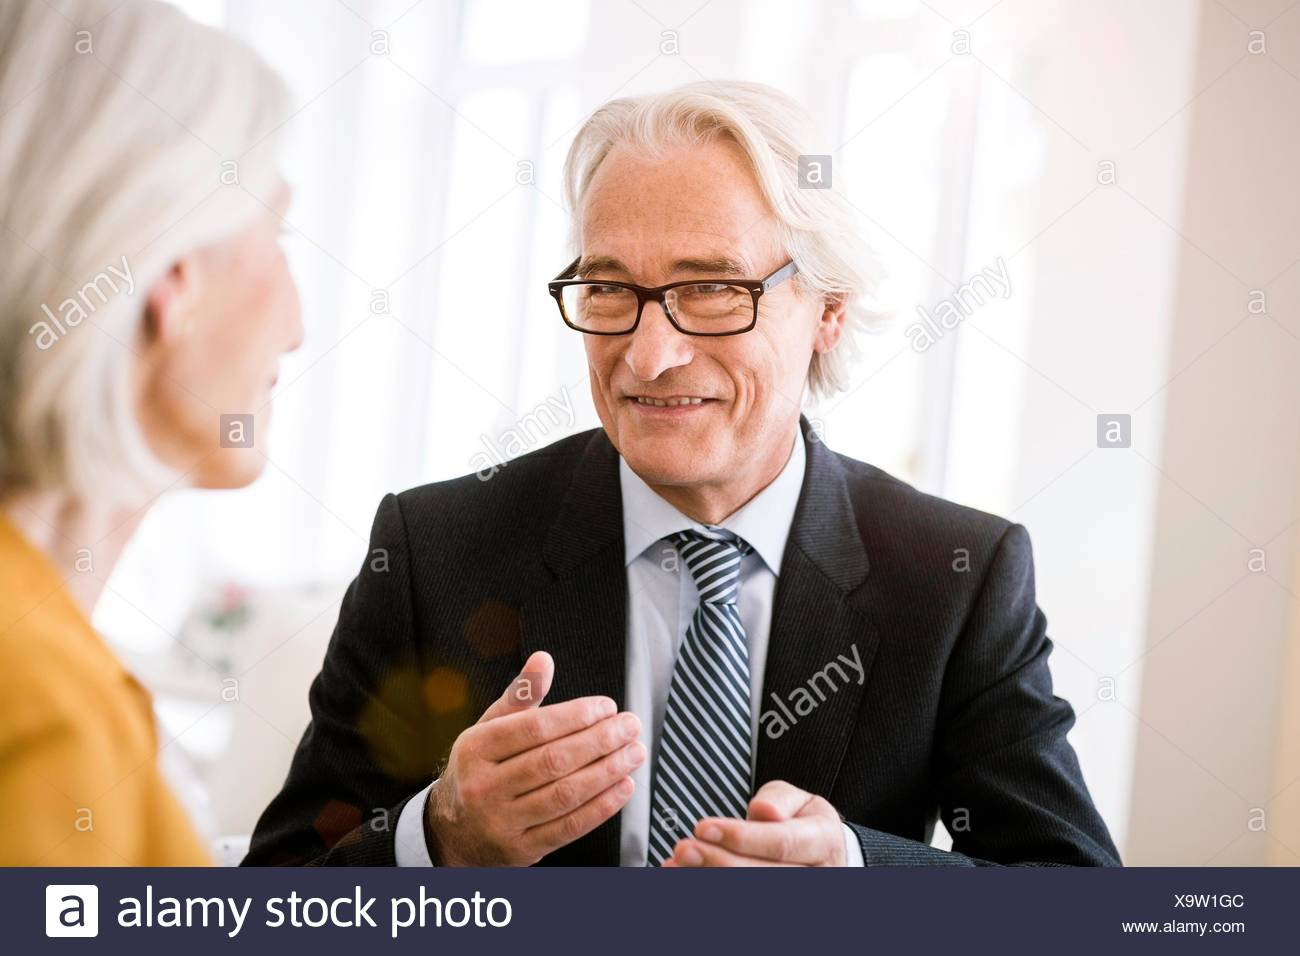 Senior man wearing shirt, tie and suit jacket talking to senior woman - Stock Image